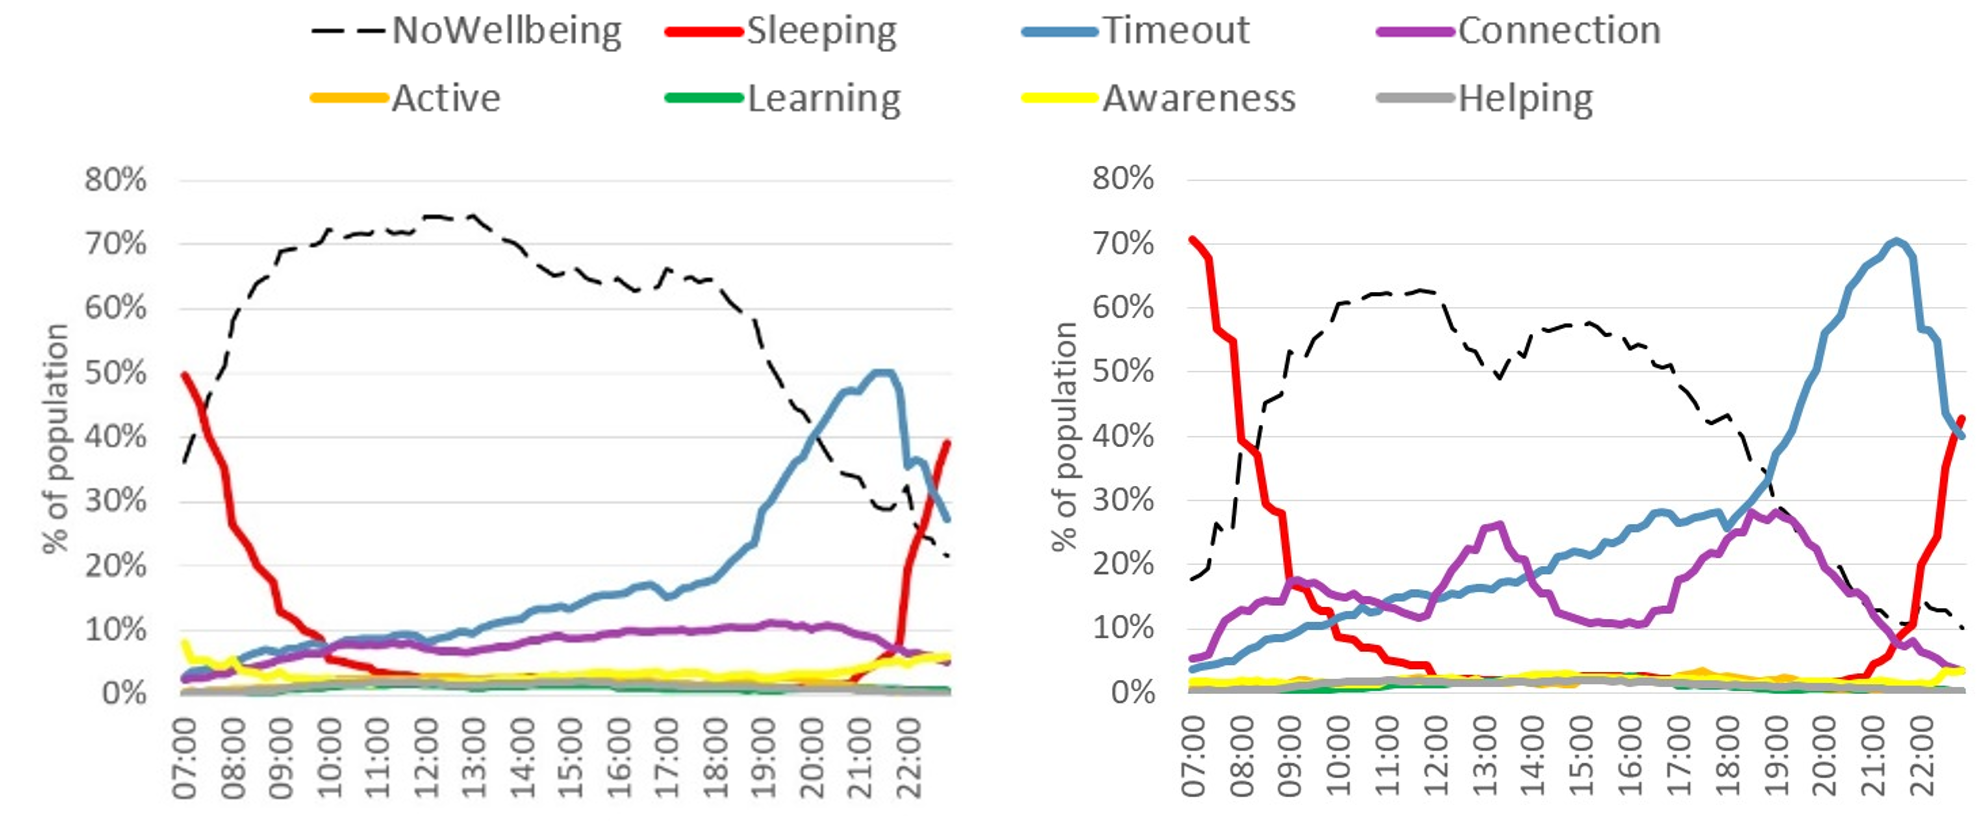 Line chart showing well-being behaviour 2015 (benchmark) to the left and Line chart showing well-being behaviour March and April 2020 to the right.